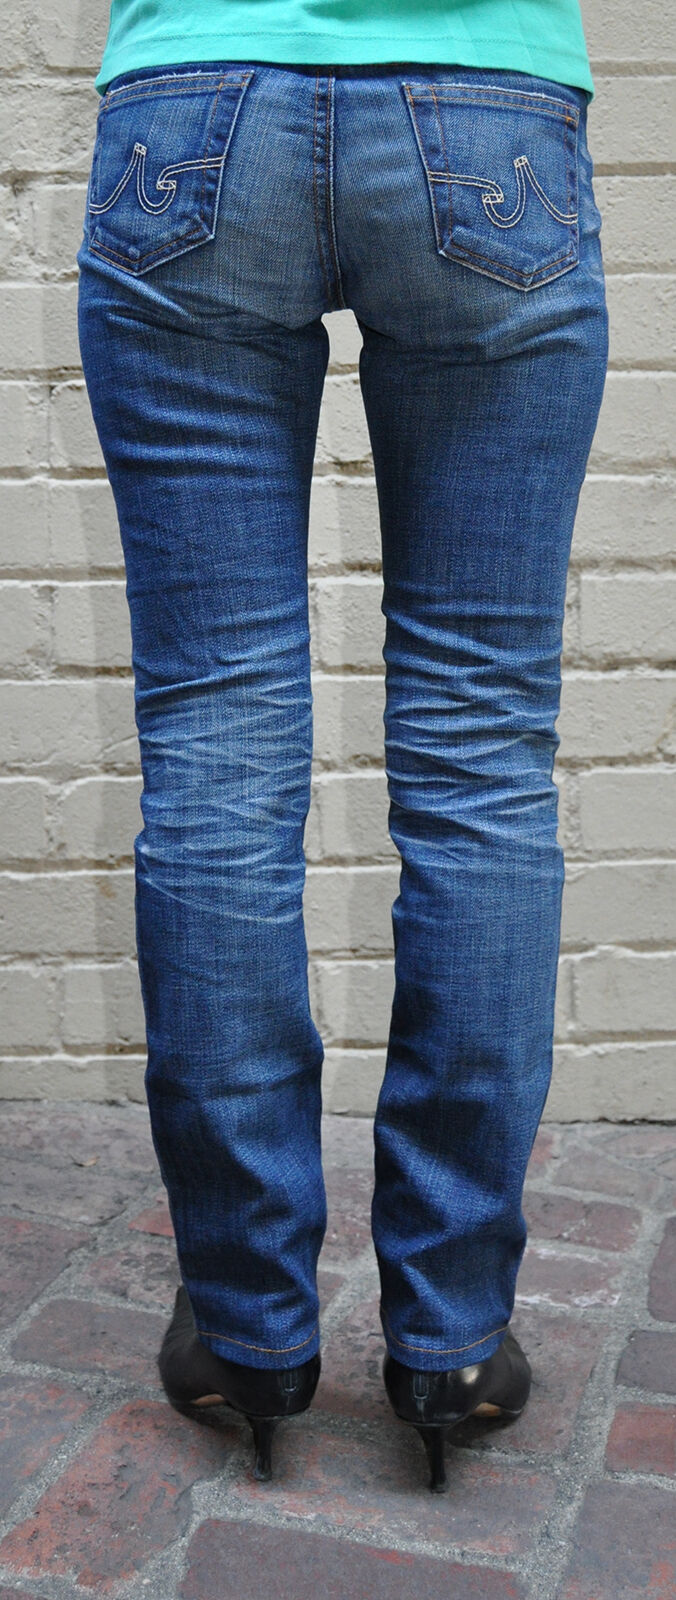 AG Adriano goldschmied The Premiere 15 YR bluee Jeans 25 R Womens USA